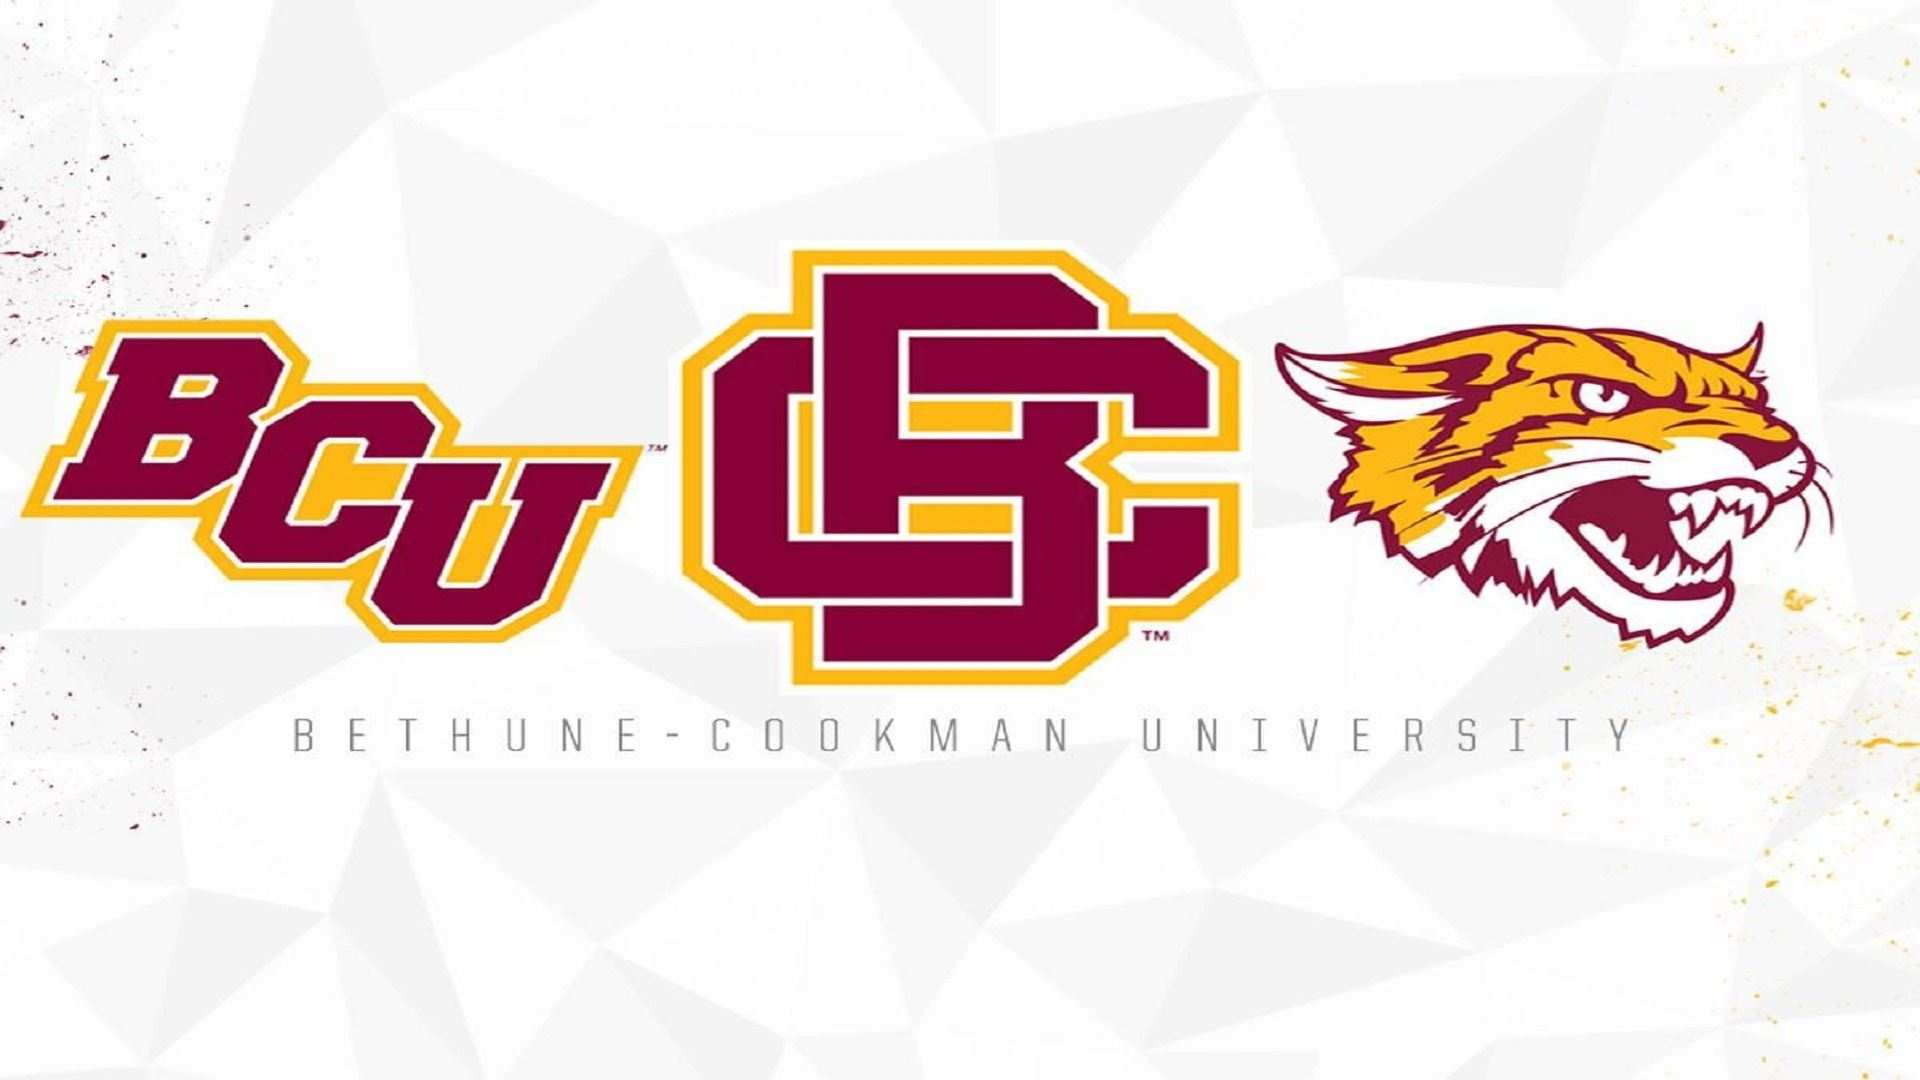 Bethune-Cookman University cancels all sports for 2020-21 due to COVID-19